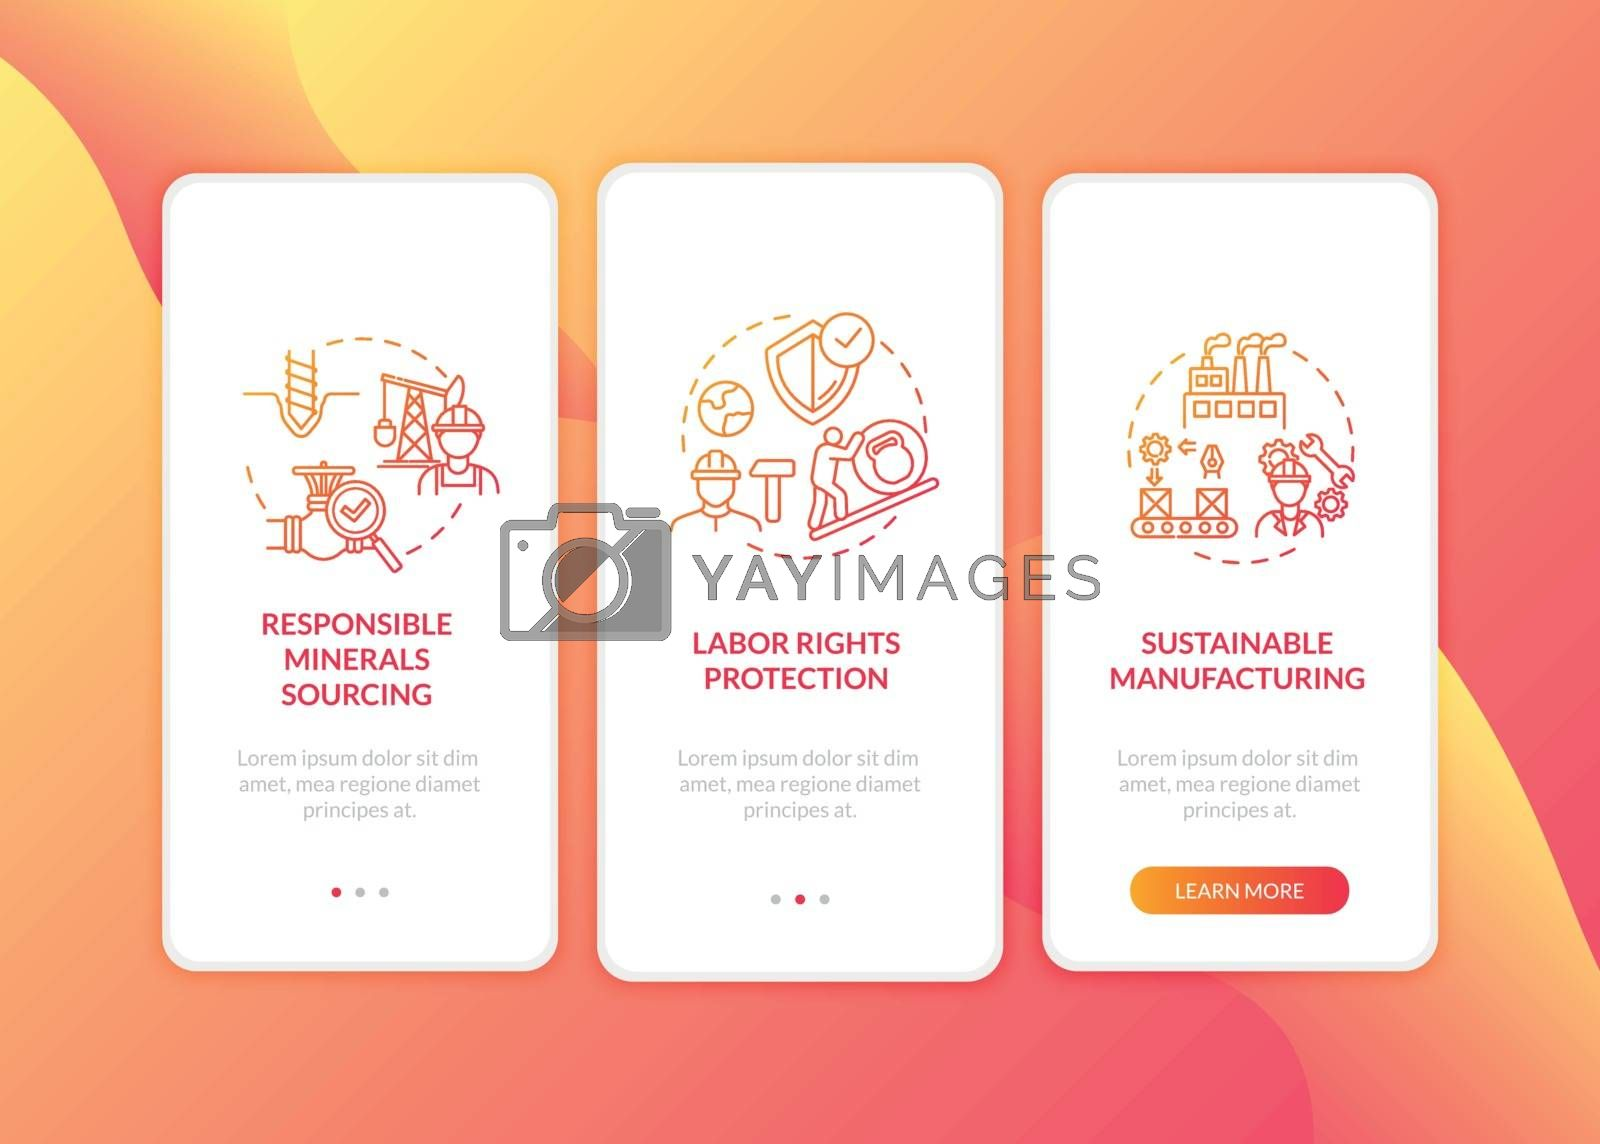 Safe labour on factory onboarding mobile app page screen with concepts. Ethical manufacture walkthrough 5 steps graphic instructions. UI vector template with RGB color illustrations